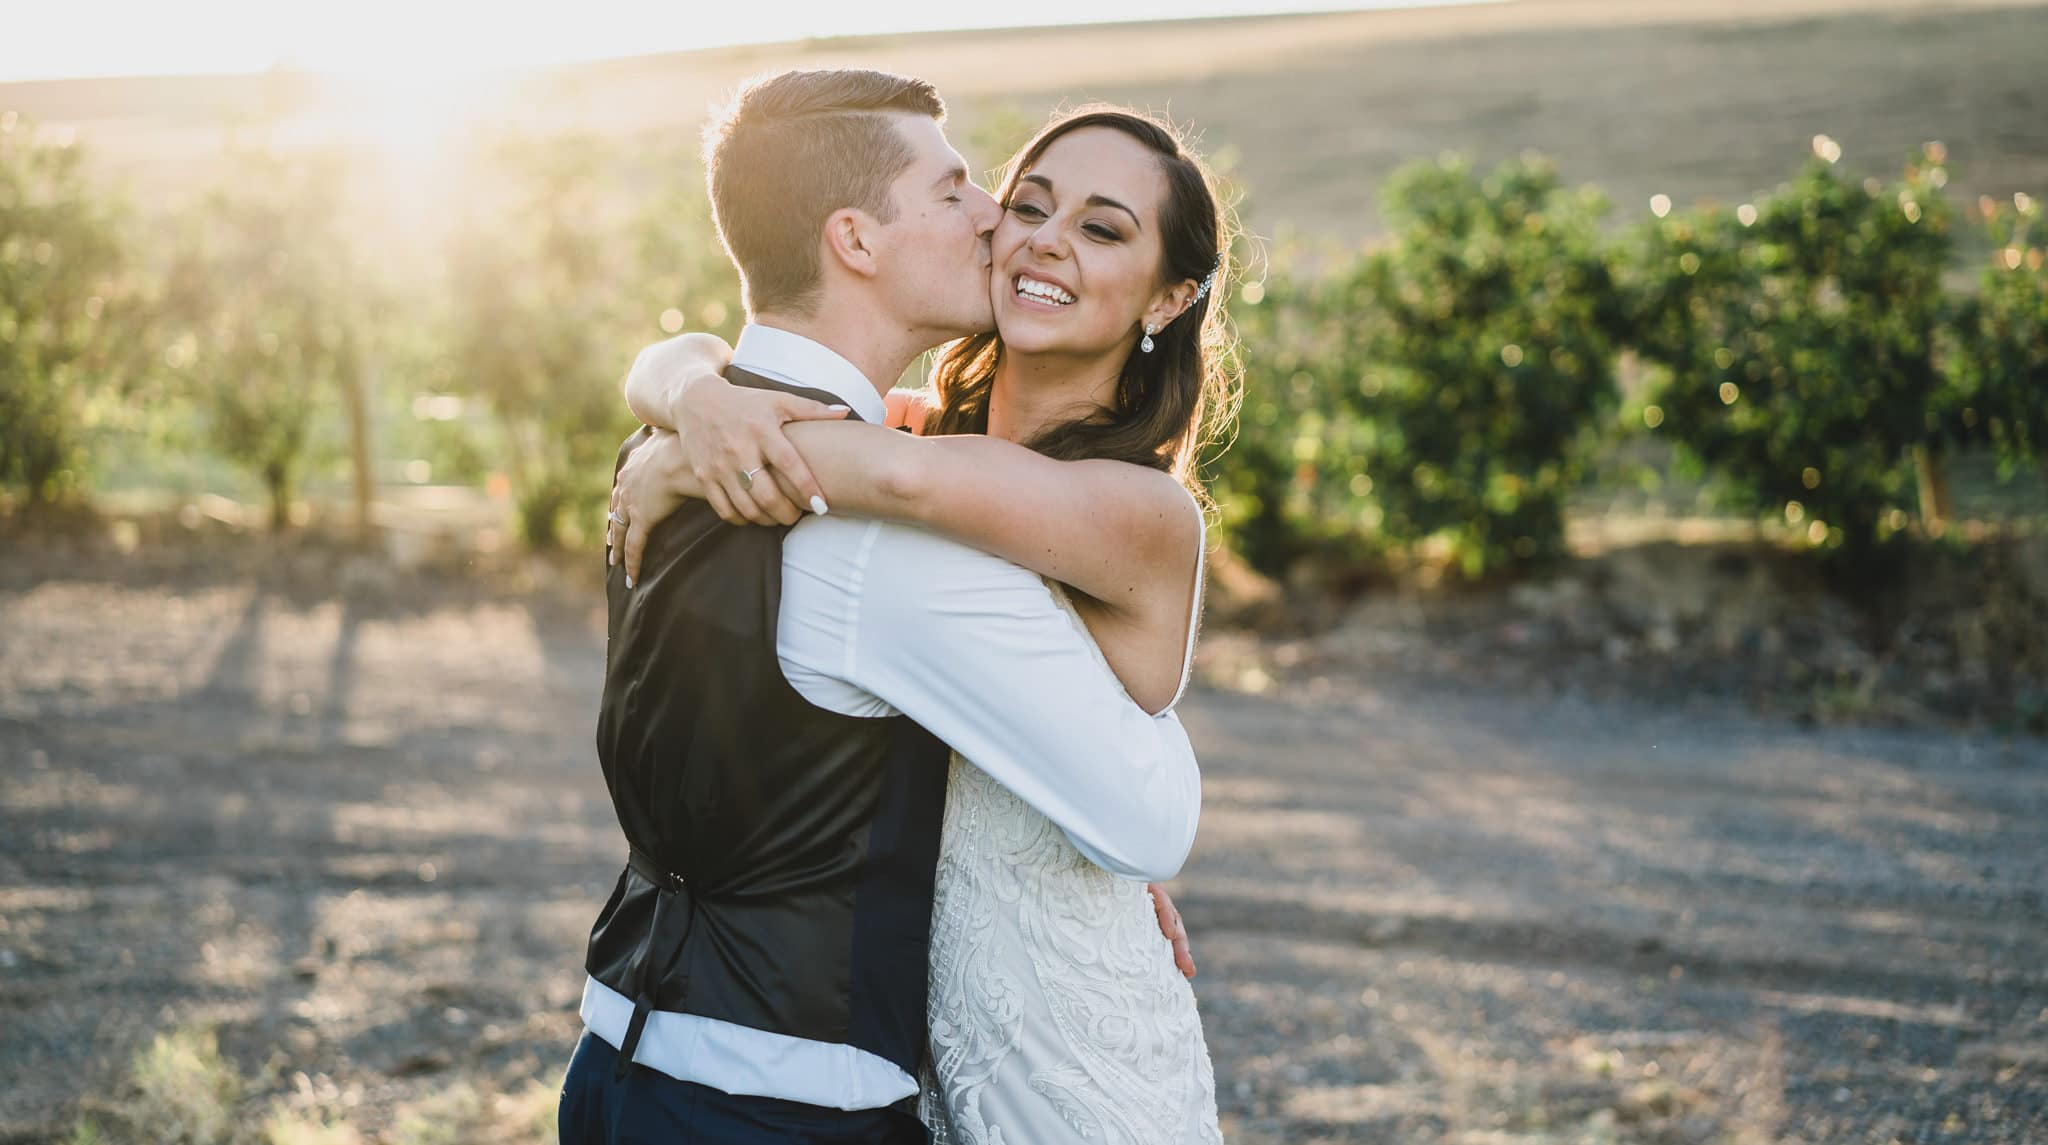 Melbourne and Yarra Valley wedding photographers, Lionheart Photography.